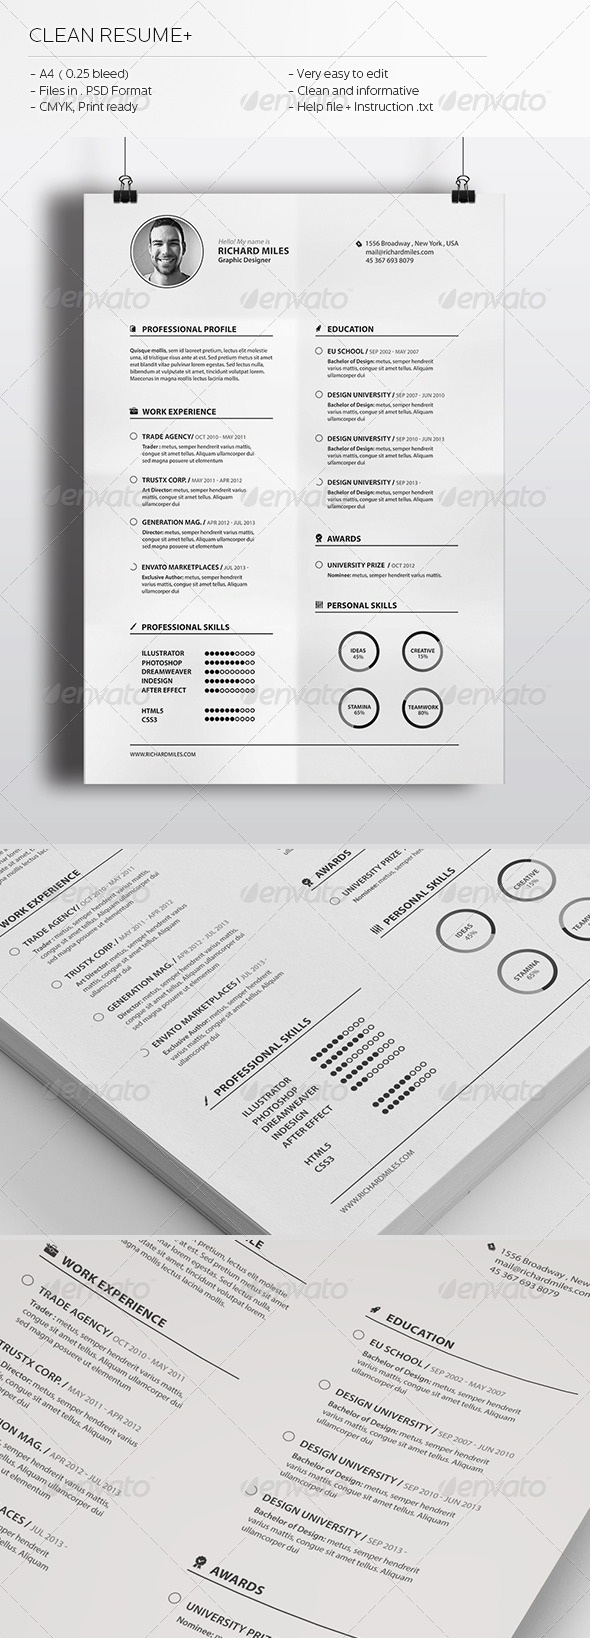 GraphicRiver Clean Resume& 6252584